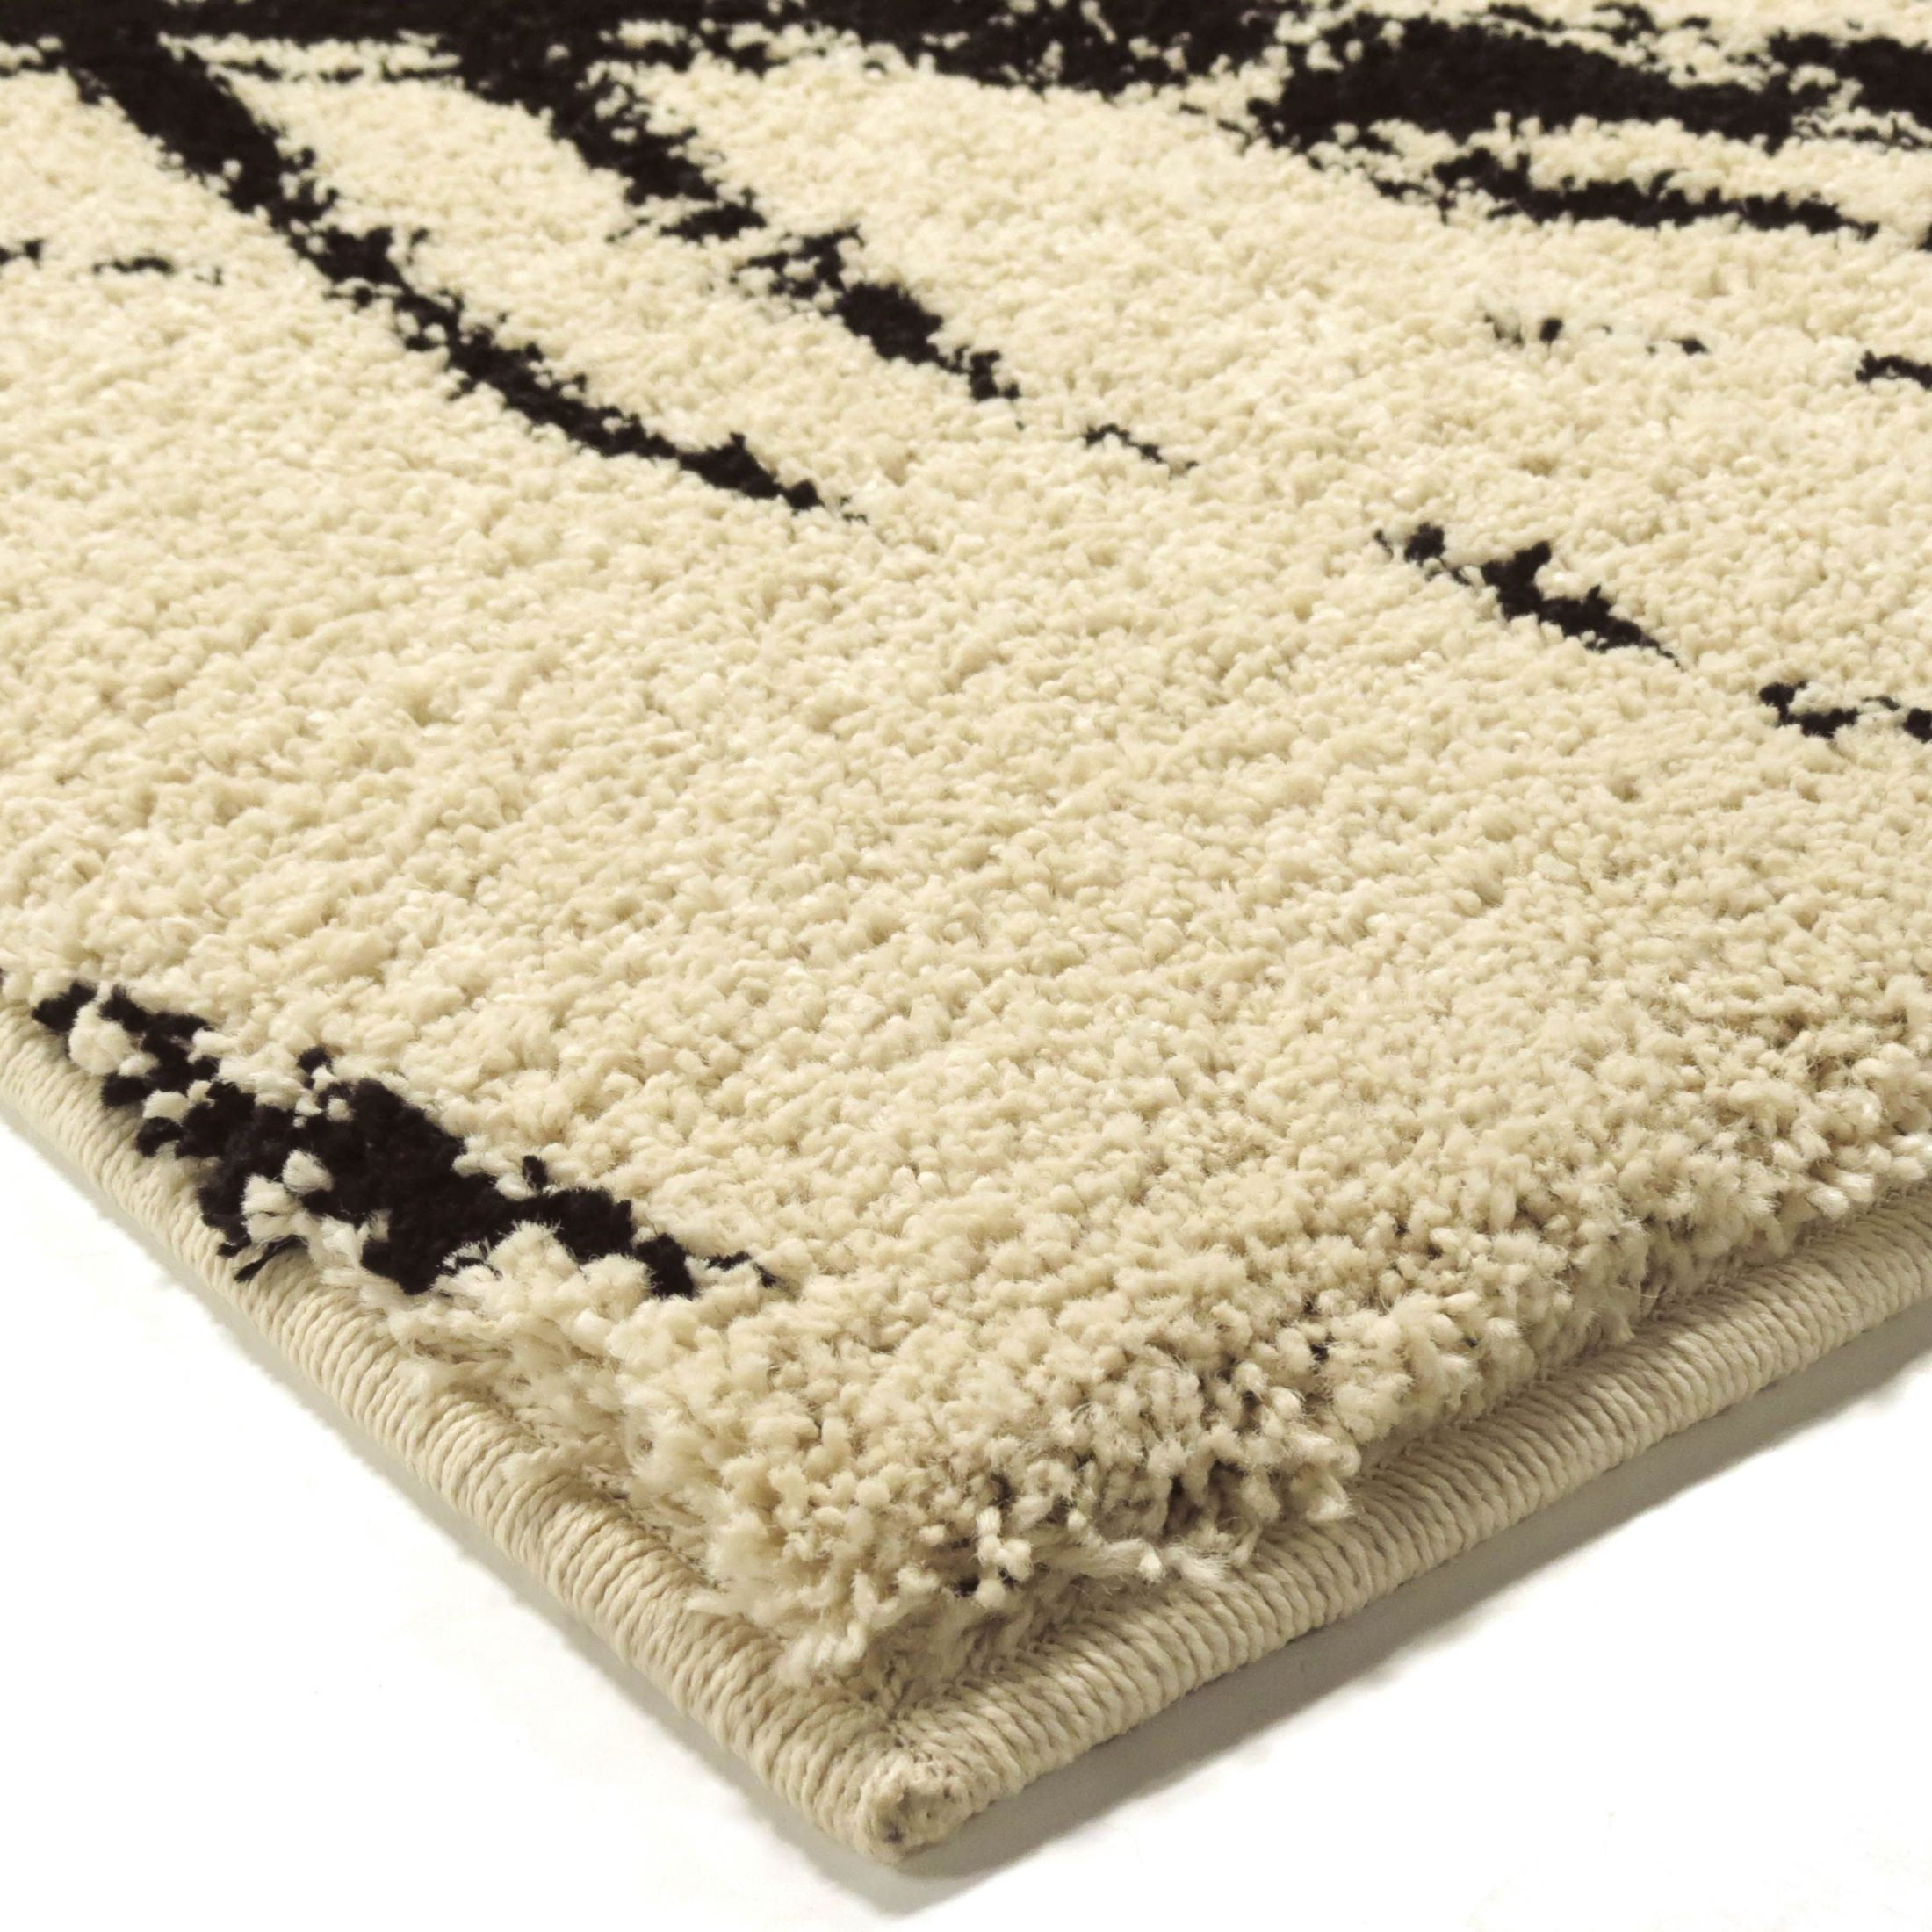 Discount 8x11 Area Rugs: Majestic Shag Plush Abstract Brushed Circles Ivory Large